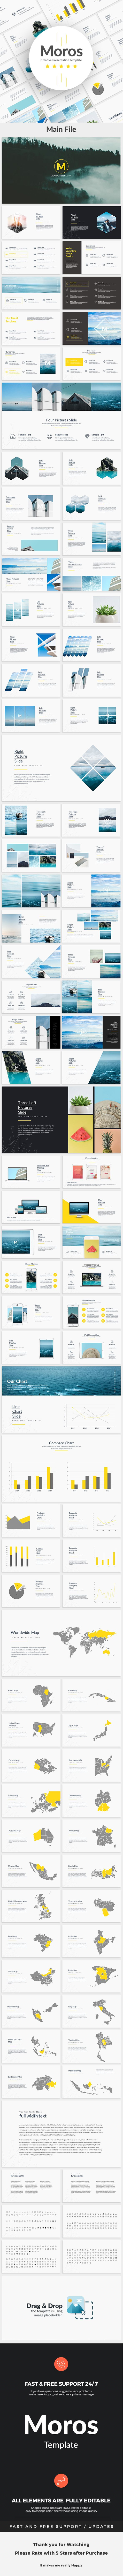 #Moros - Creative Powerpoint Template - #Creative #PowerPoint #Templates Download here: https://graphicriver.net/item/moros-creative-powerpoint-template/19145180?ref=alena994